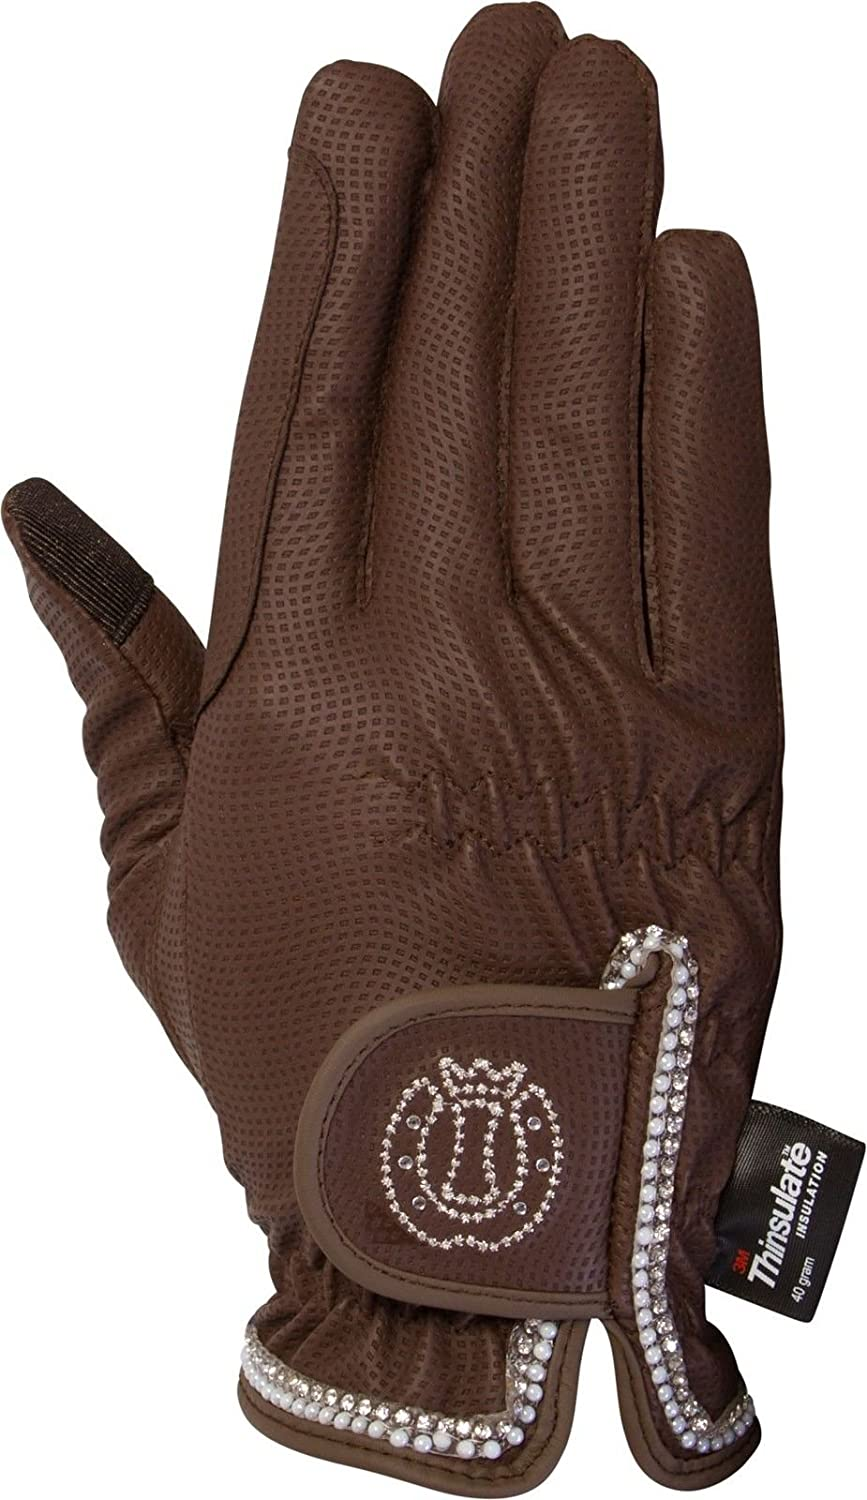 Imperial Riding Handschuhe Loraine